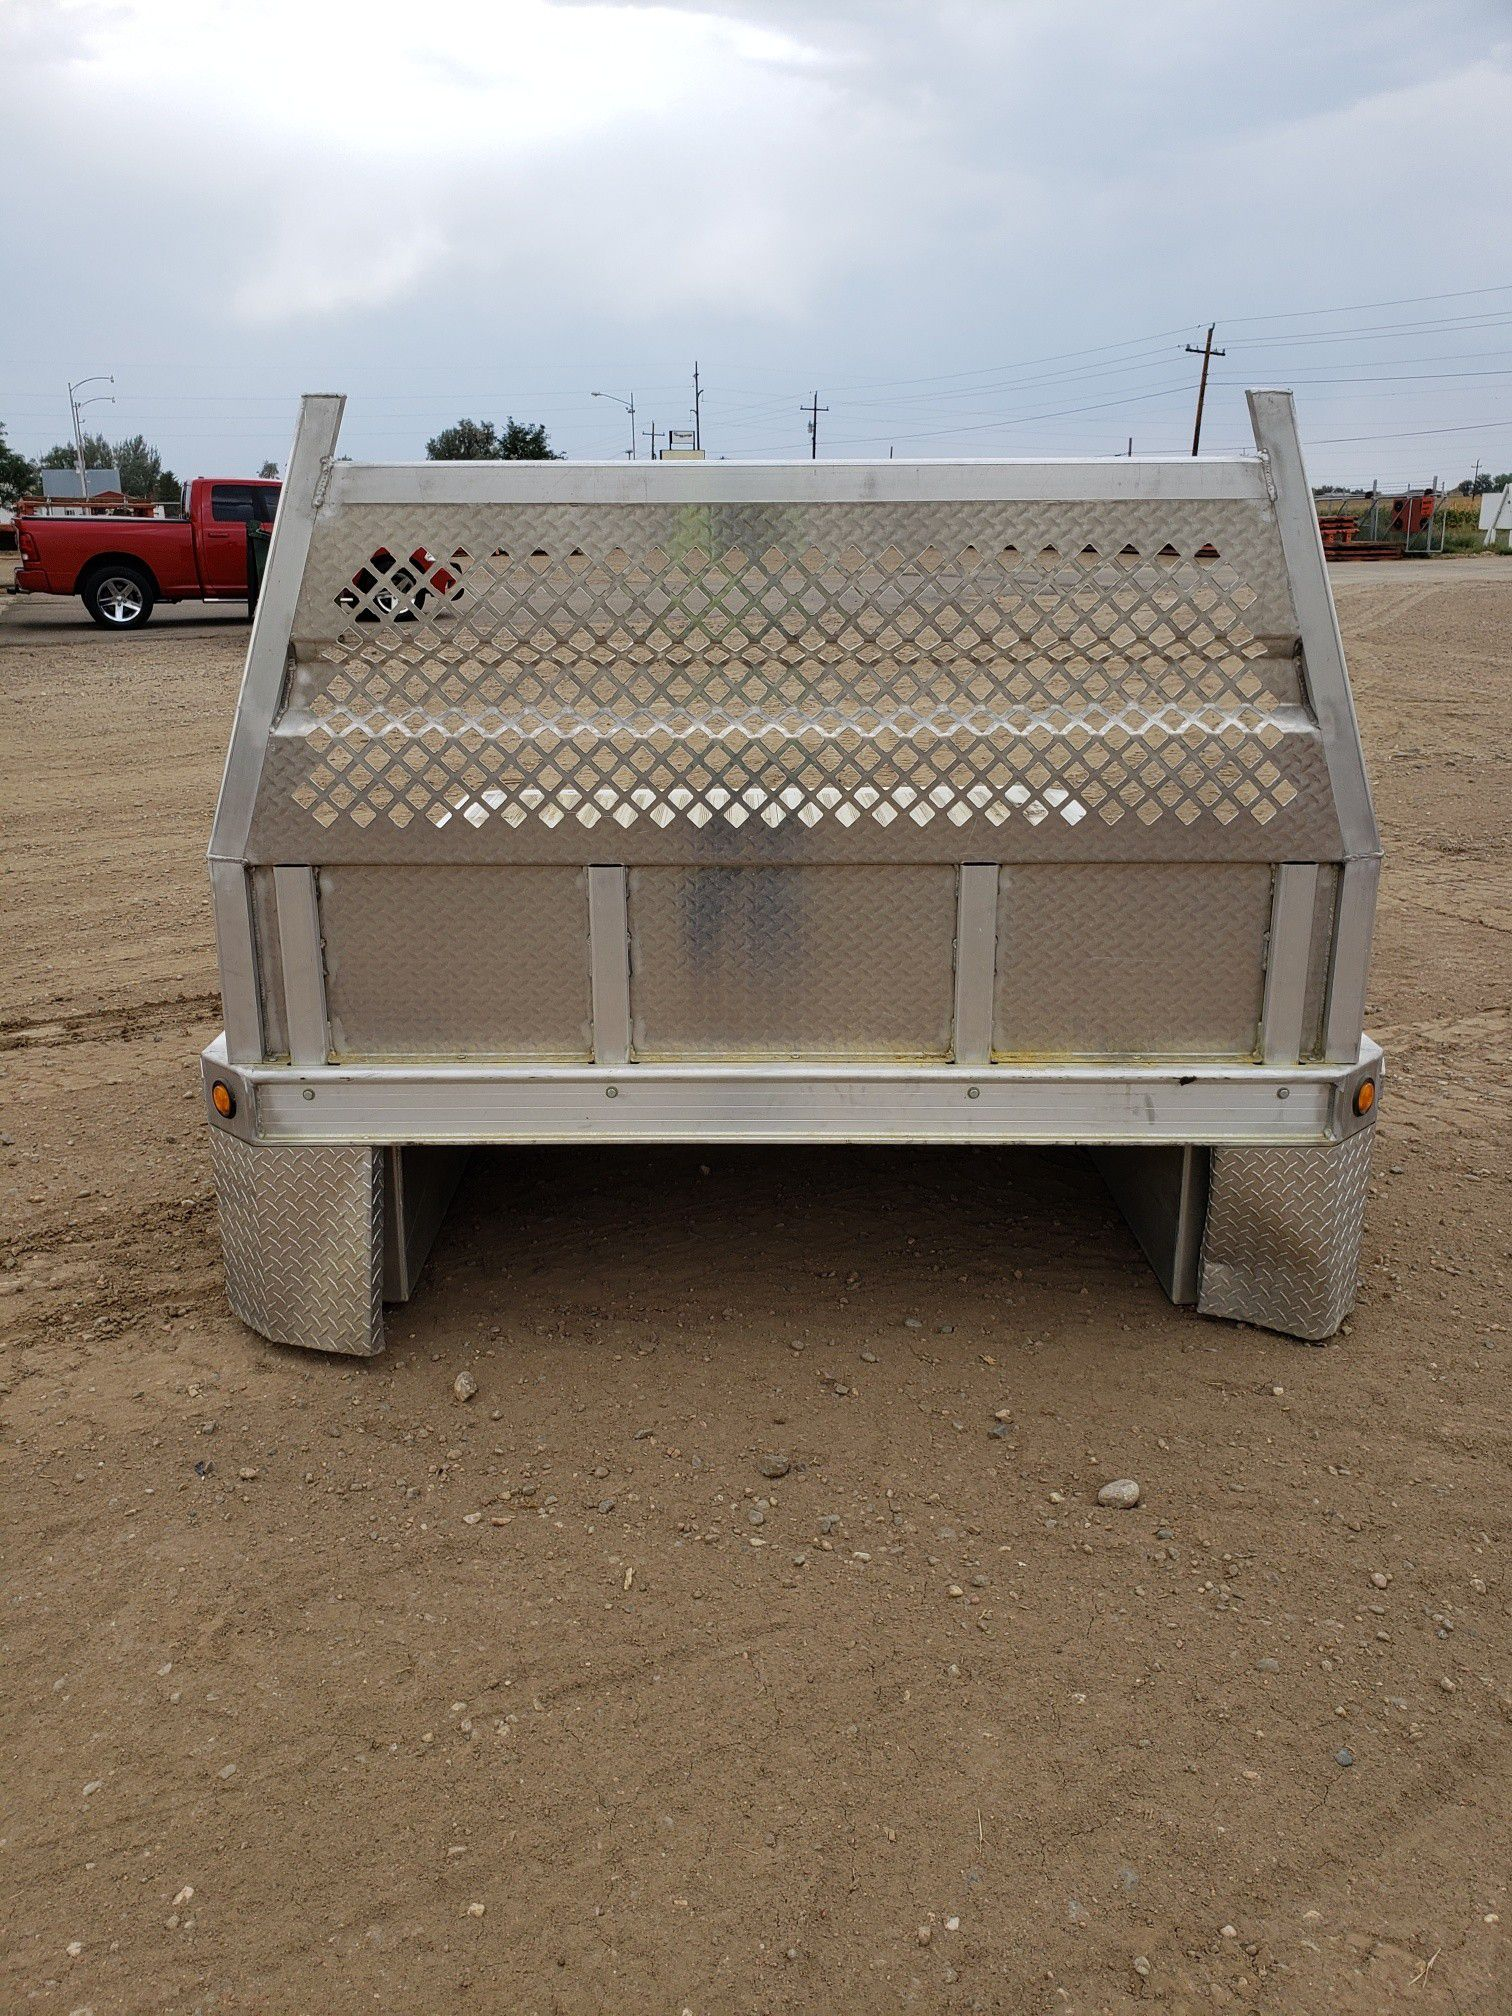 Alluminum flat bed with head ache rack and four side mount tools boxes